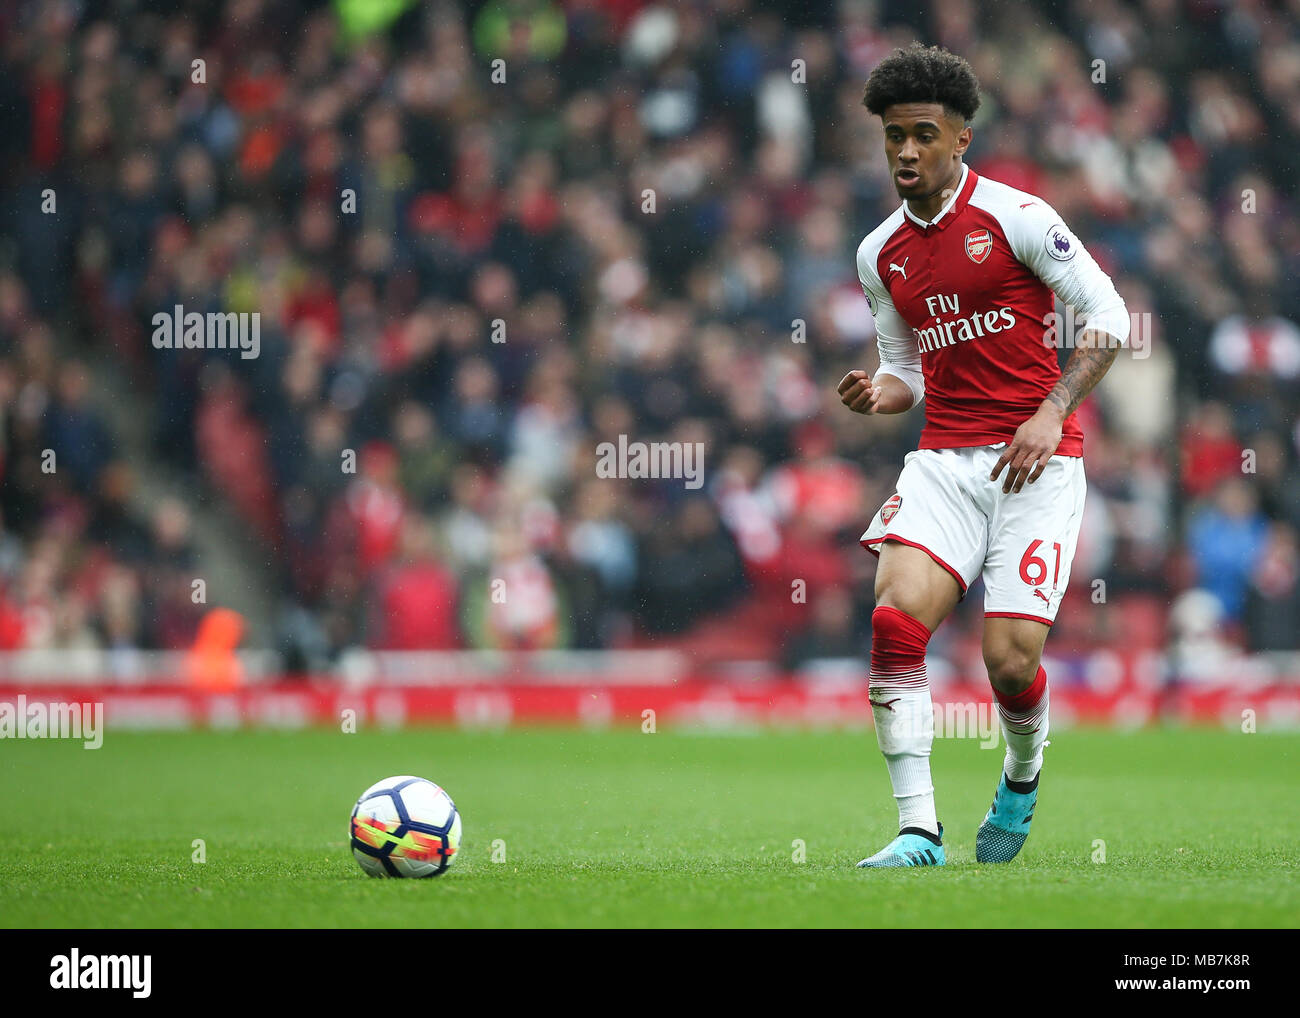 London, UK. 8th April, 2018.  Reiss Nelson of Arsenal during the Premier League match between Arsenal and Southampton at Emirates Stadium on April 8th 2018 in London, England. (Photo by Arron Gent/phcimages.com) Credit: PHC Images/Alamy Live News Stock Photo